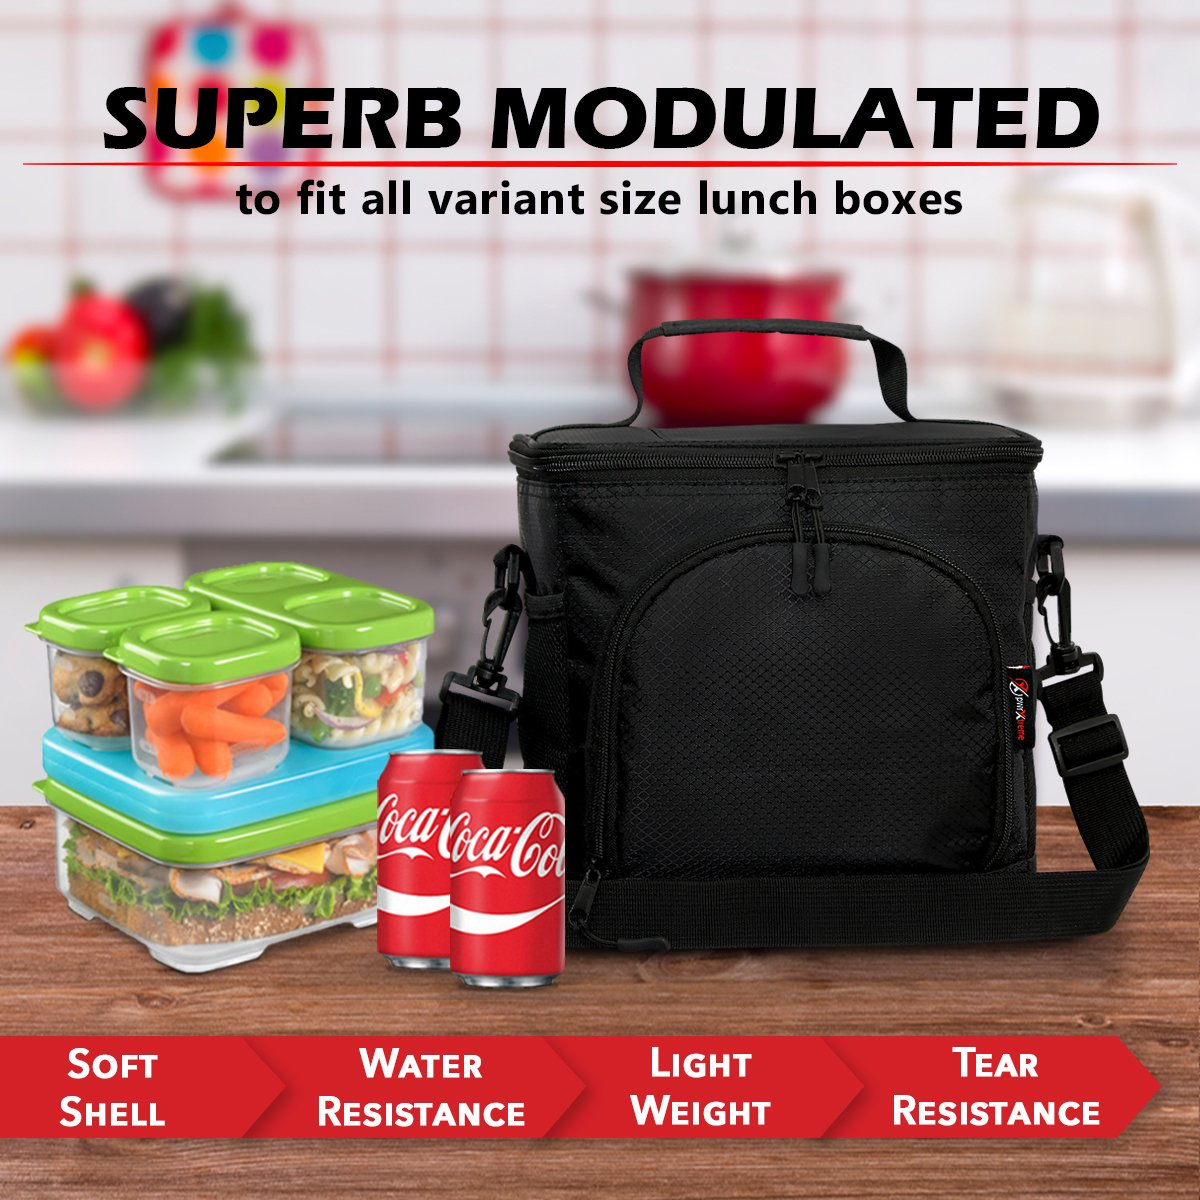 Pwrxtreme Insulated Lunch Bag with 2 Way Zipper